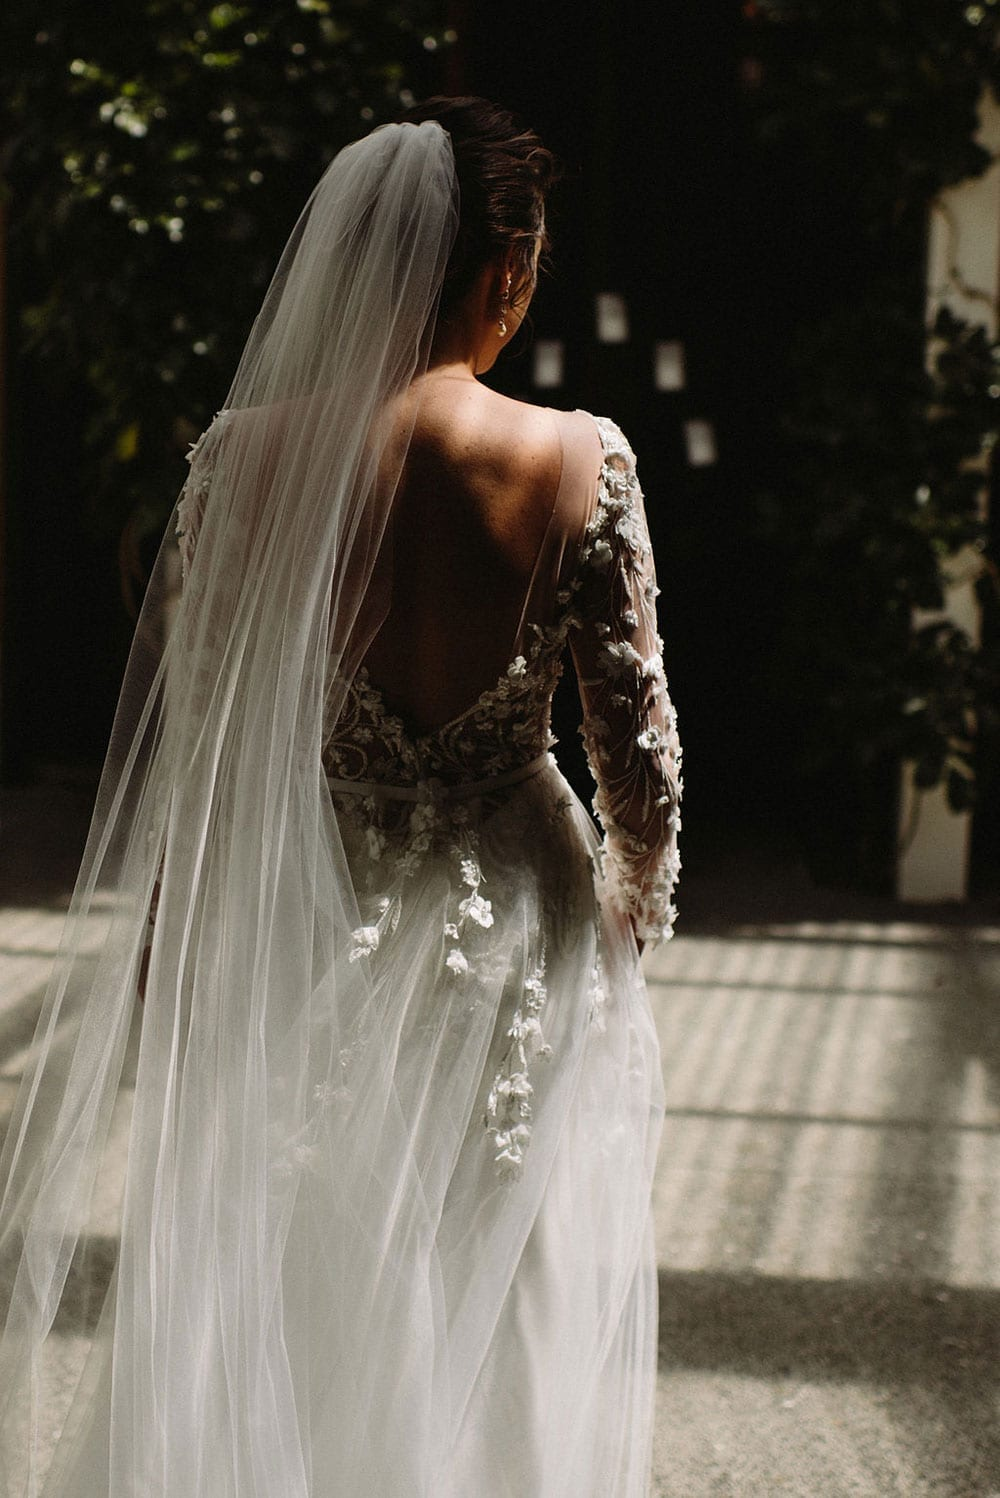 Vinka Design Features Real Weddings - bride in custom made wedding dress with tulle overskirt with appliqued lace flowers and custom made veil in dappled sunlight from behind